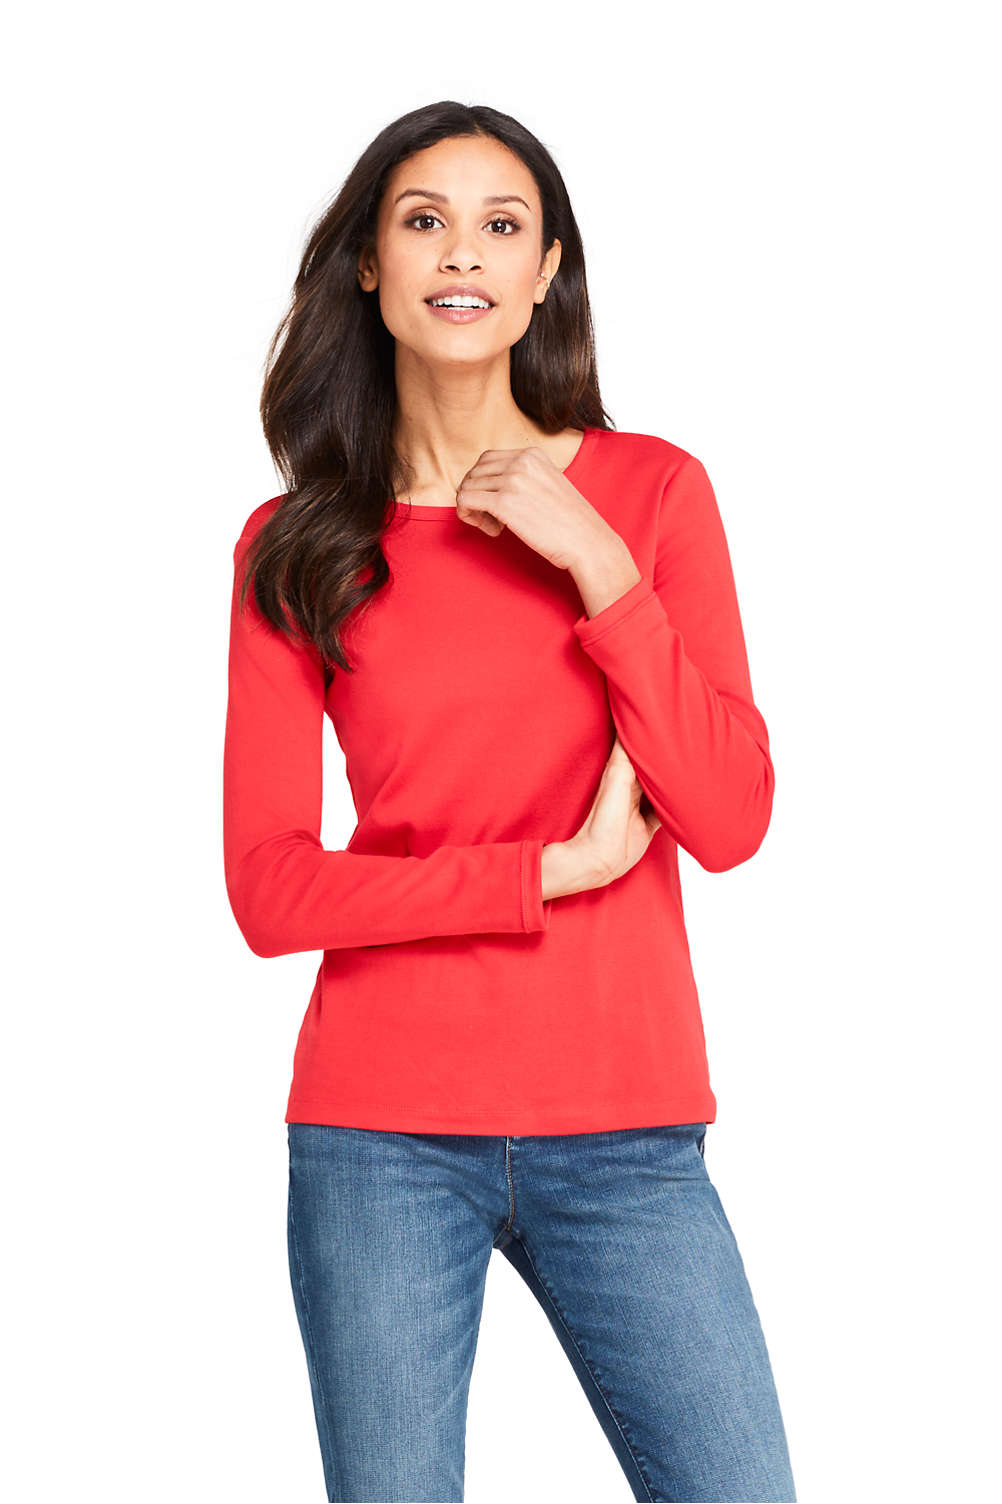 40553f9a3a1 Women s All Cotton Long Sleeve T-Shirt - Rib Knit Crewneck from ...